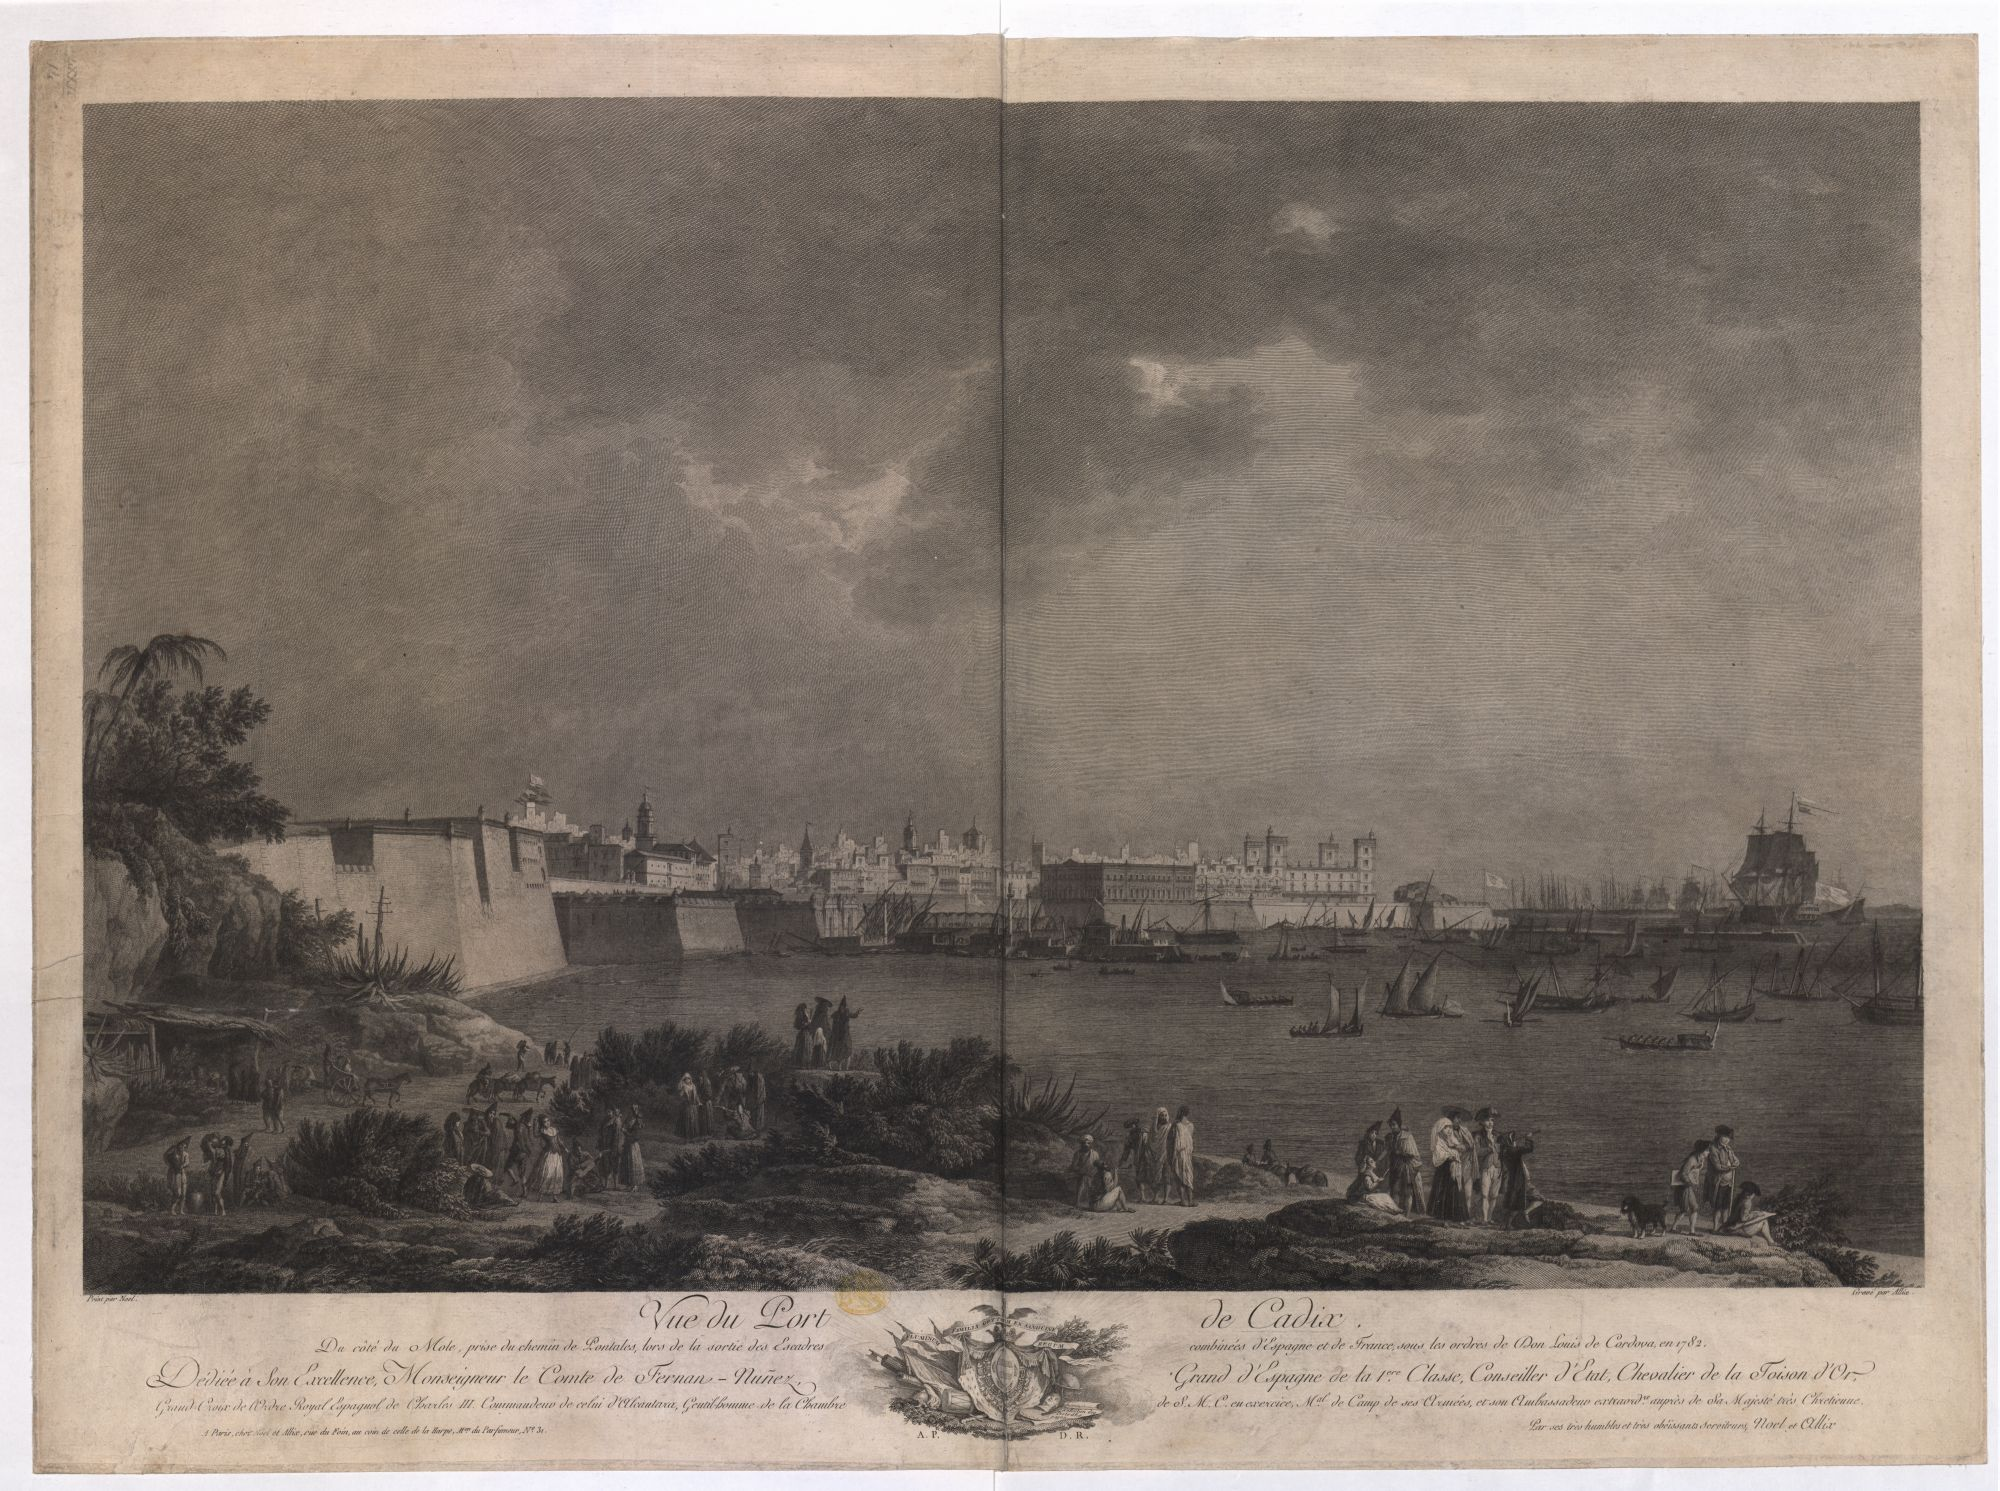 An engraved view of the port of Cádiz by François Allix after Alexandre Jean Noël.